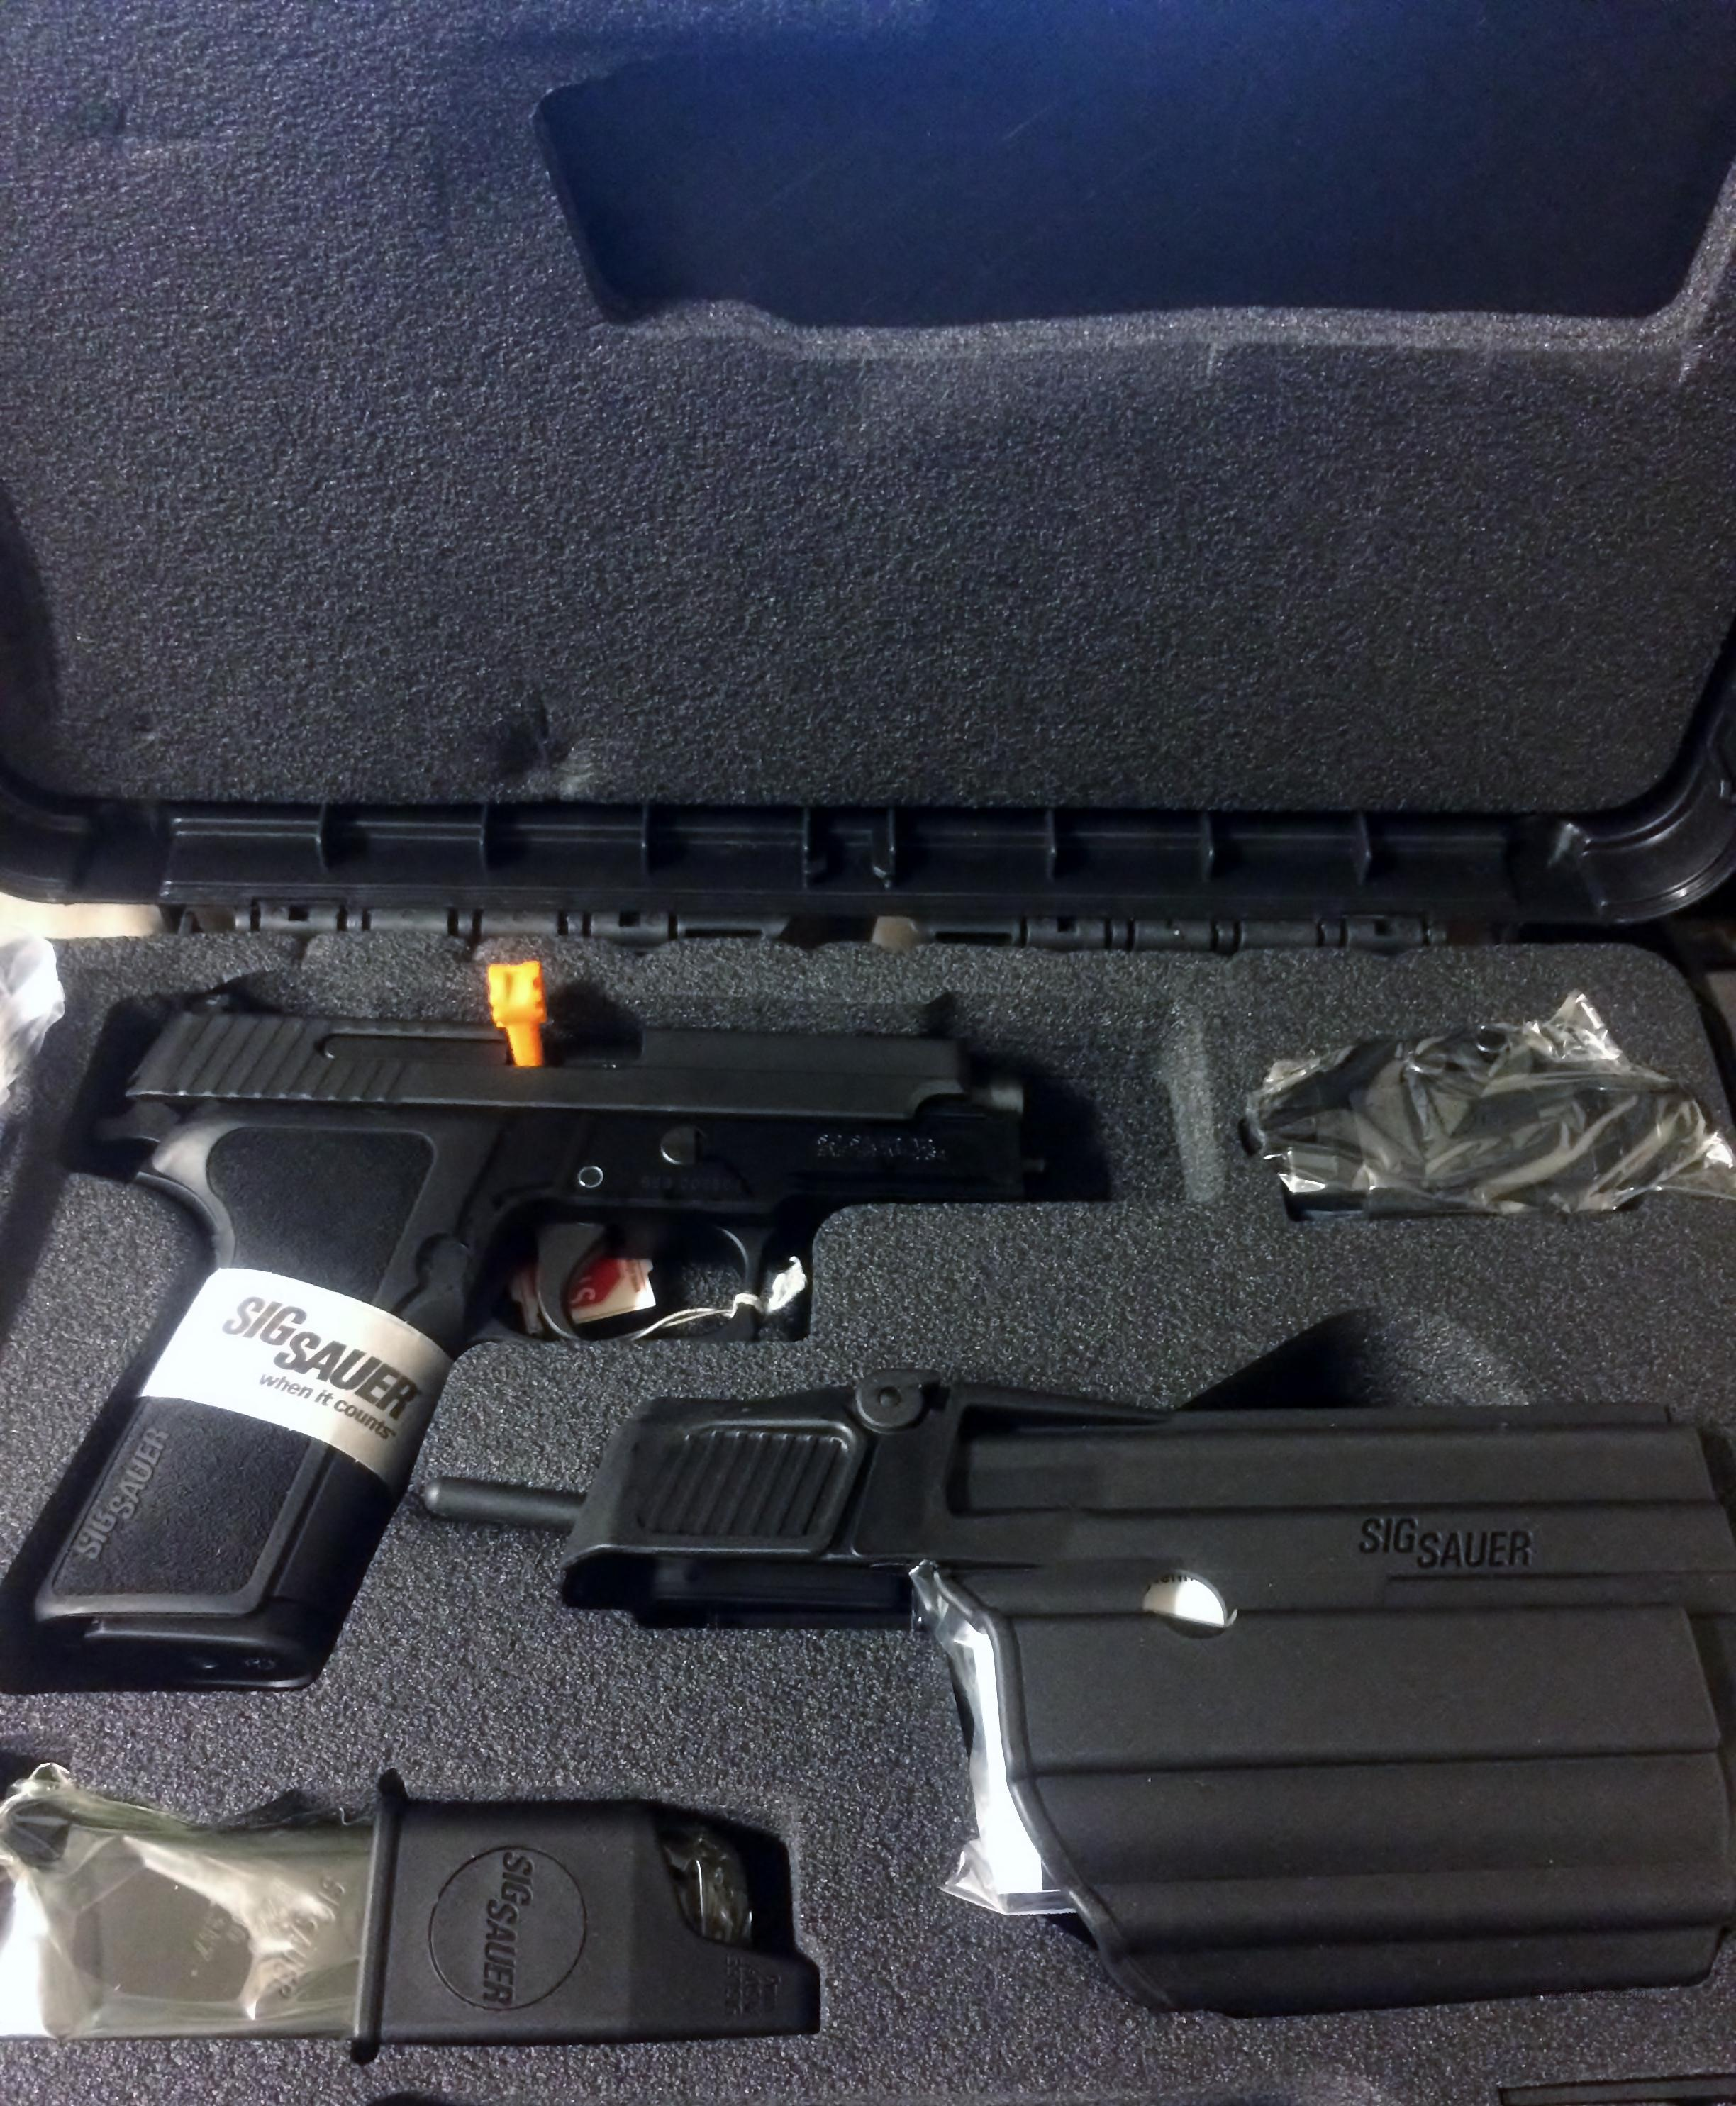 For Sale Trade Sig Sauer P229 9mm Tacpac With: Sig Sauer 229 40S&W TacPac E29R-40-BSS-TacPac-L... For Sale